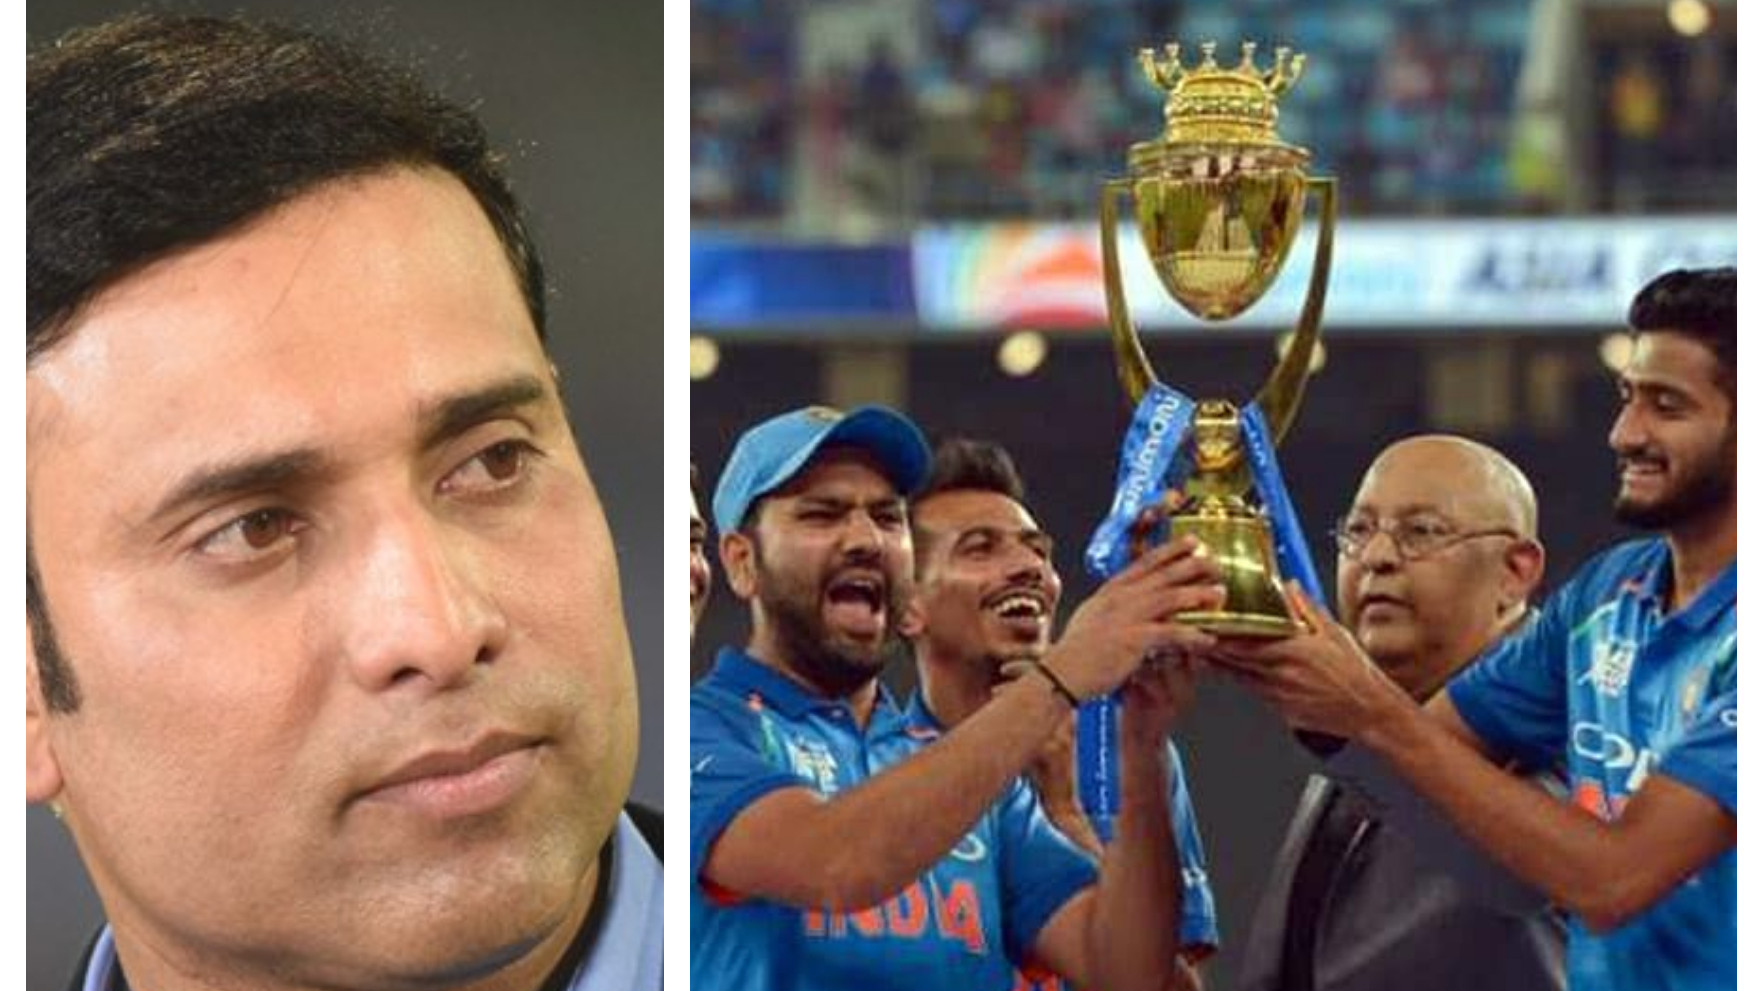 VVS Laxman says that the Indian team's middle order woes are for all to see despite Asia Cup triumph